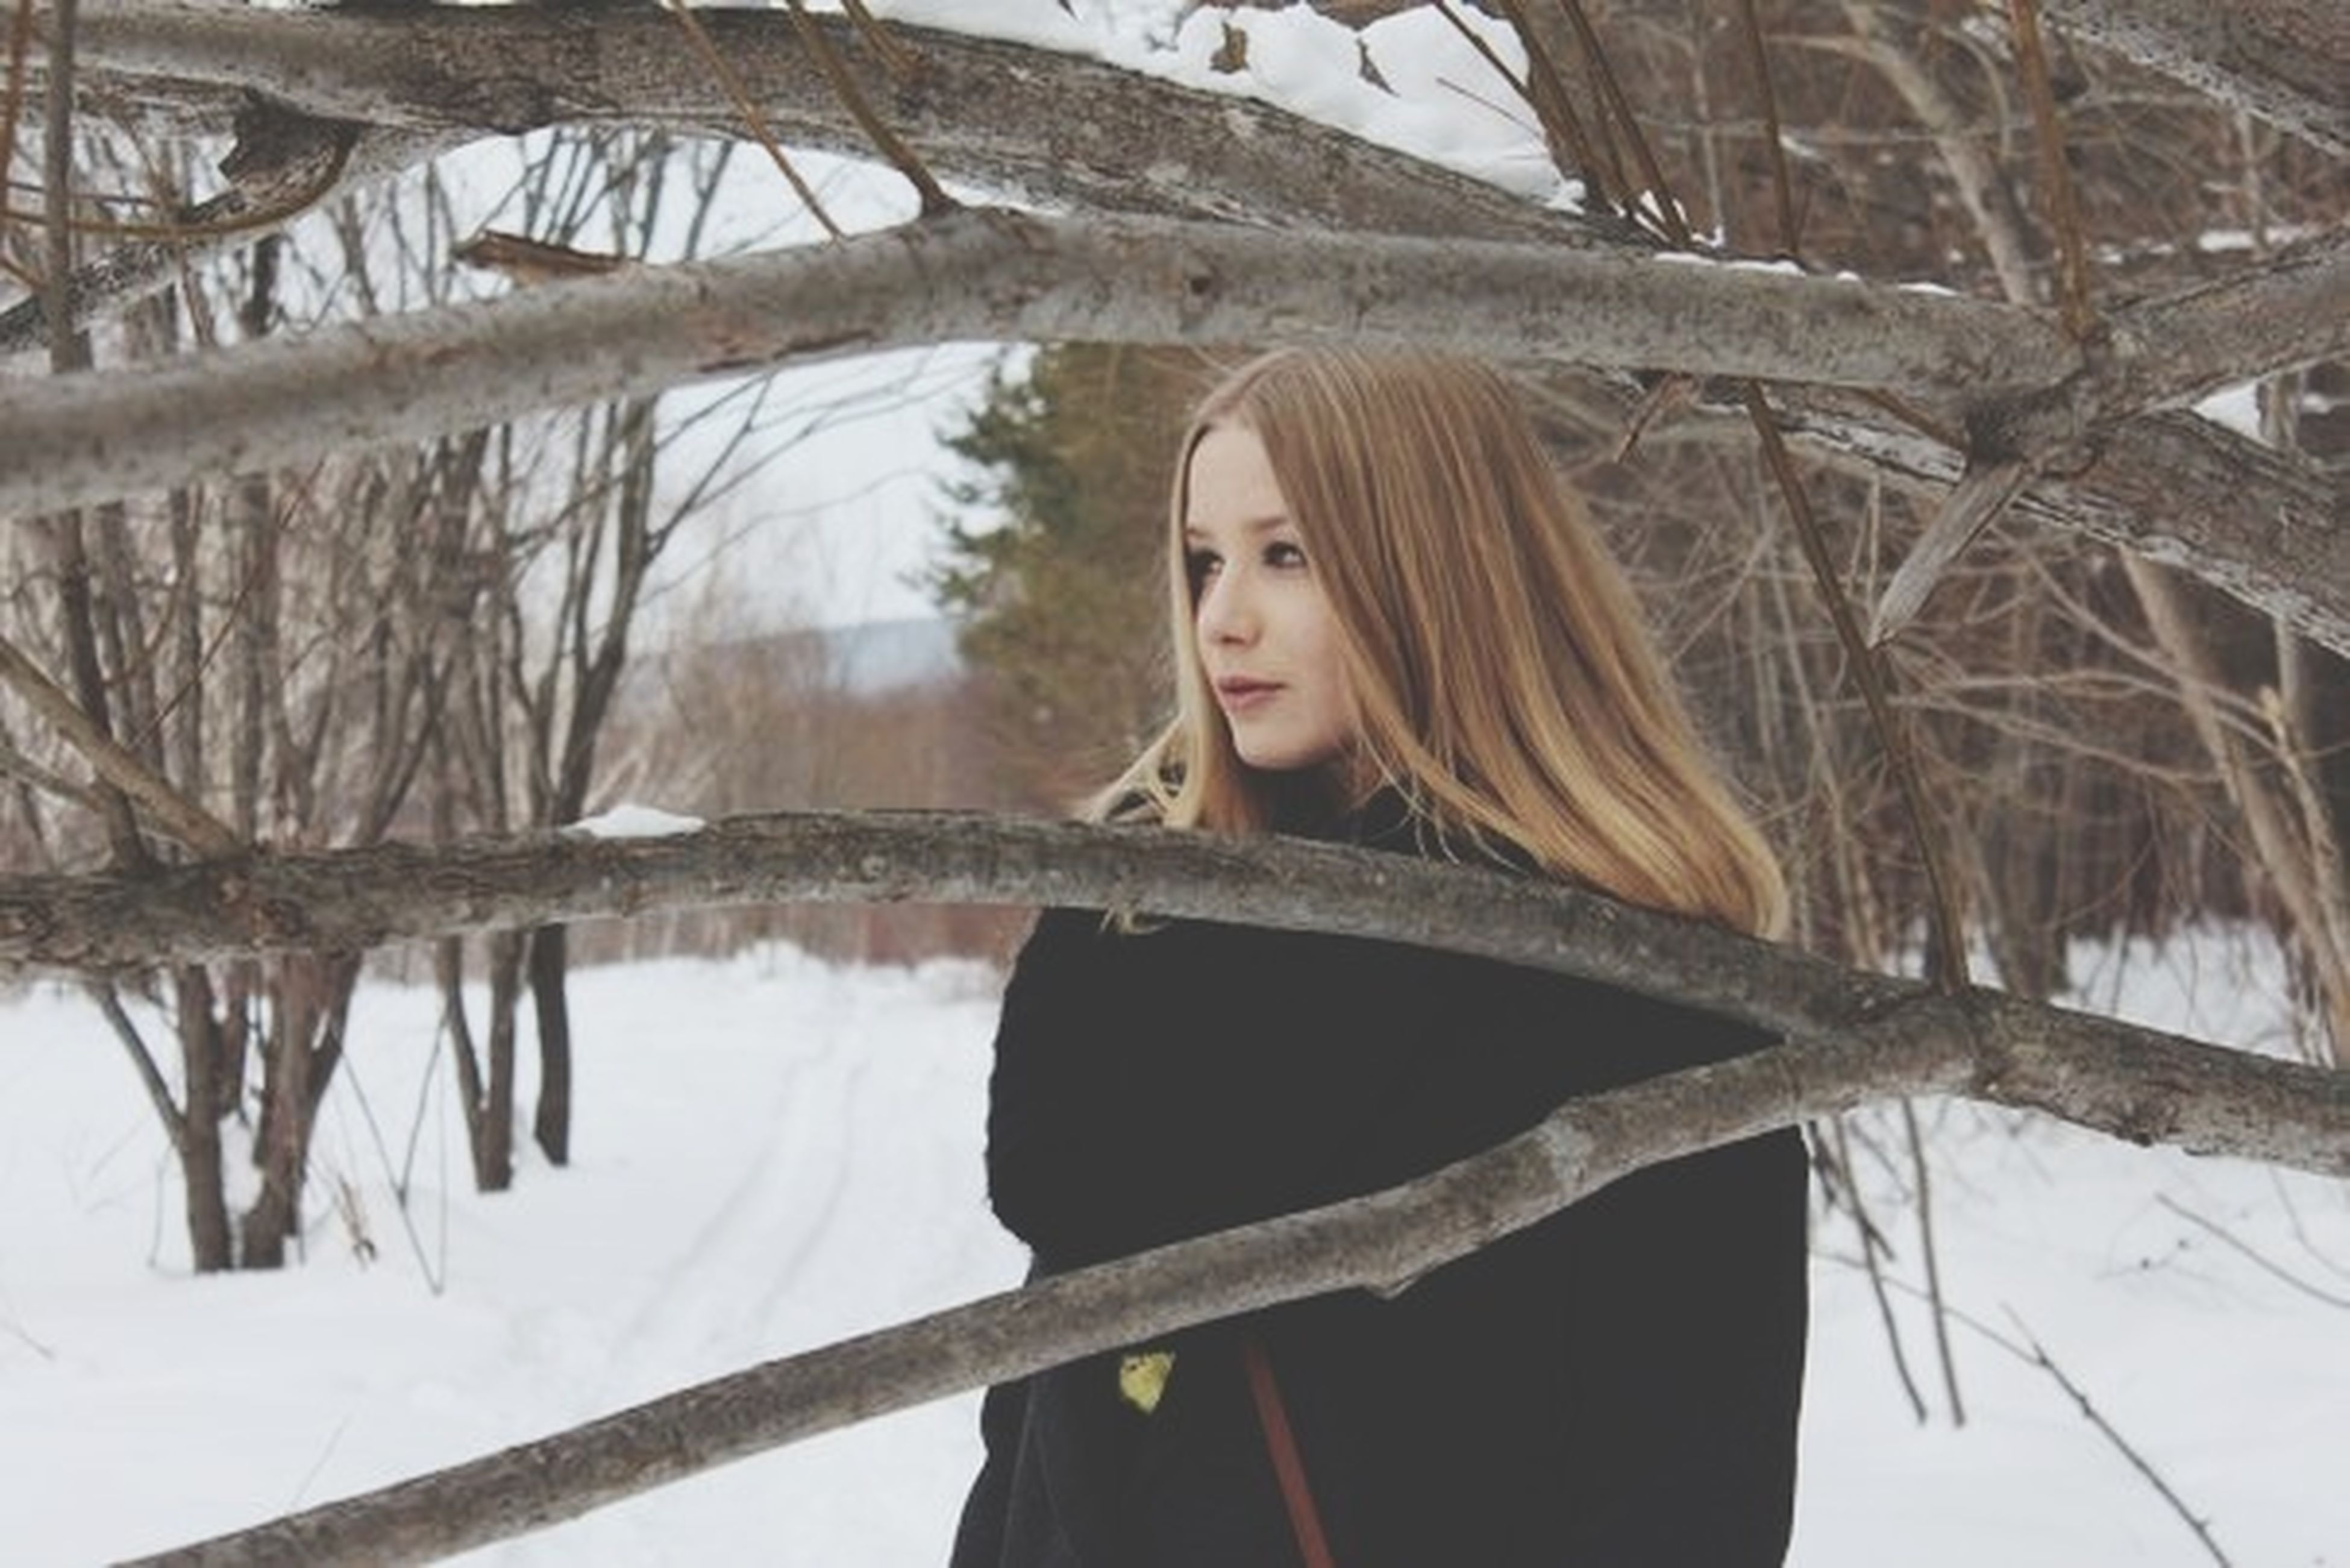 tree, lake, young adult, lifestyles, winter, snow, leisure activity, cold temperature, water, portrait, person, young women, standing, reflection, looking at camera, nature, front view, casual clothing